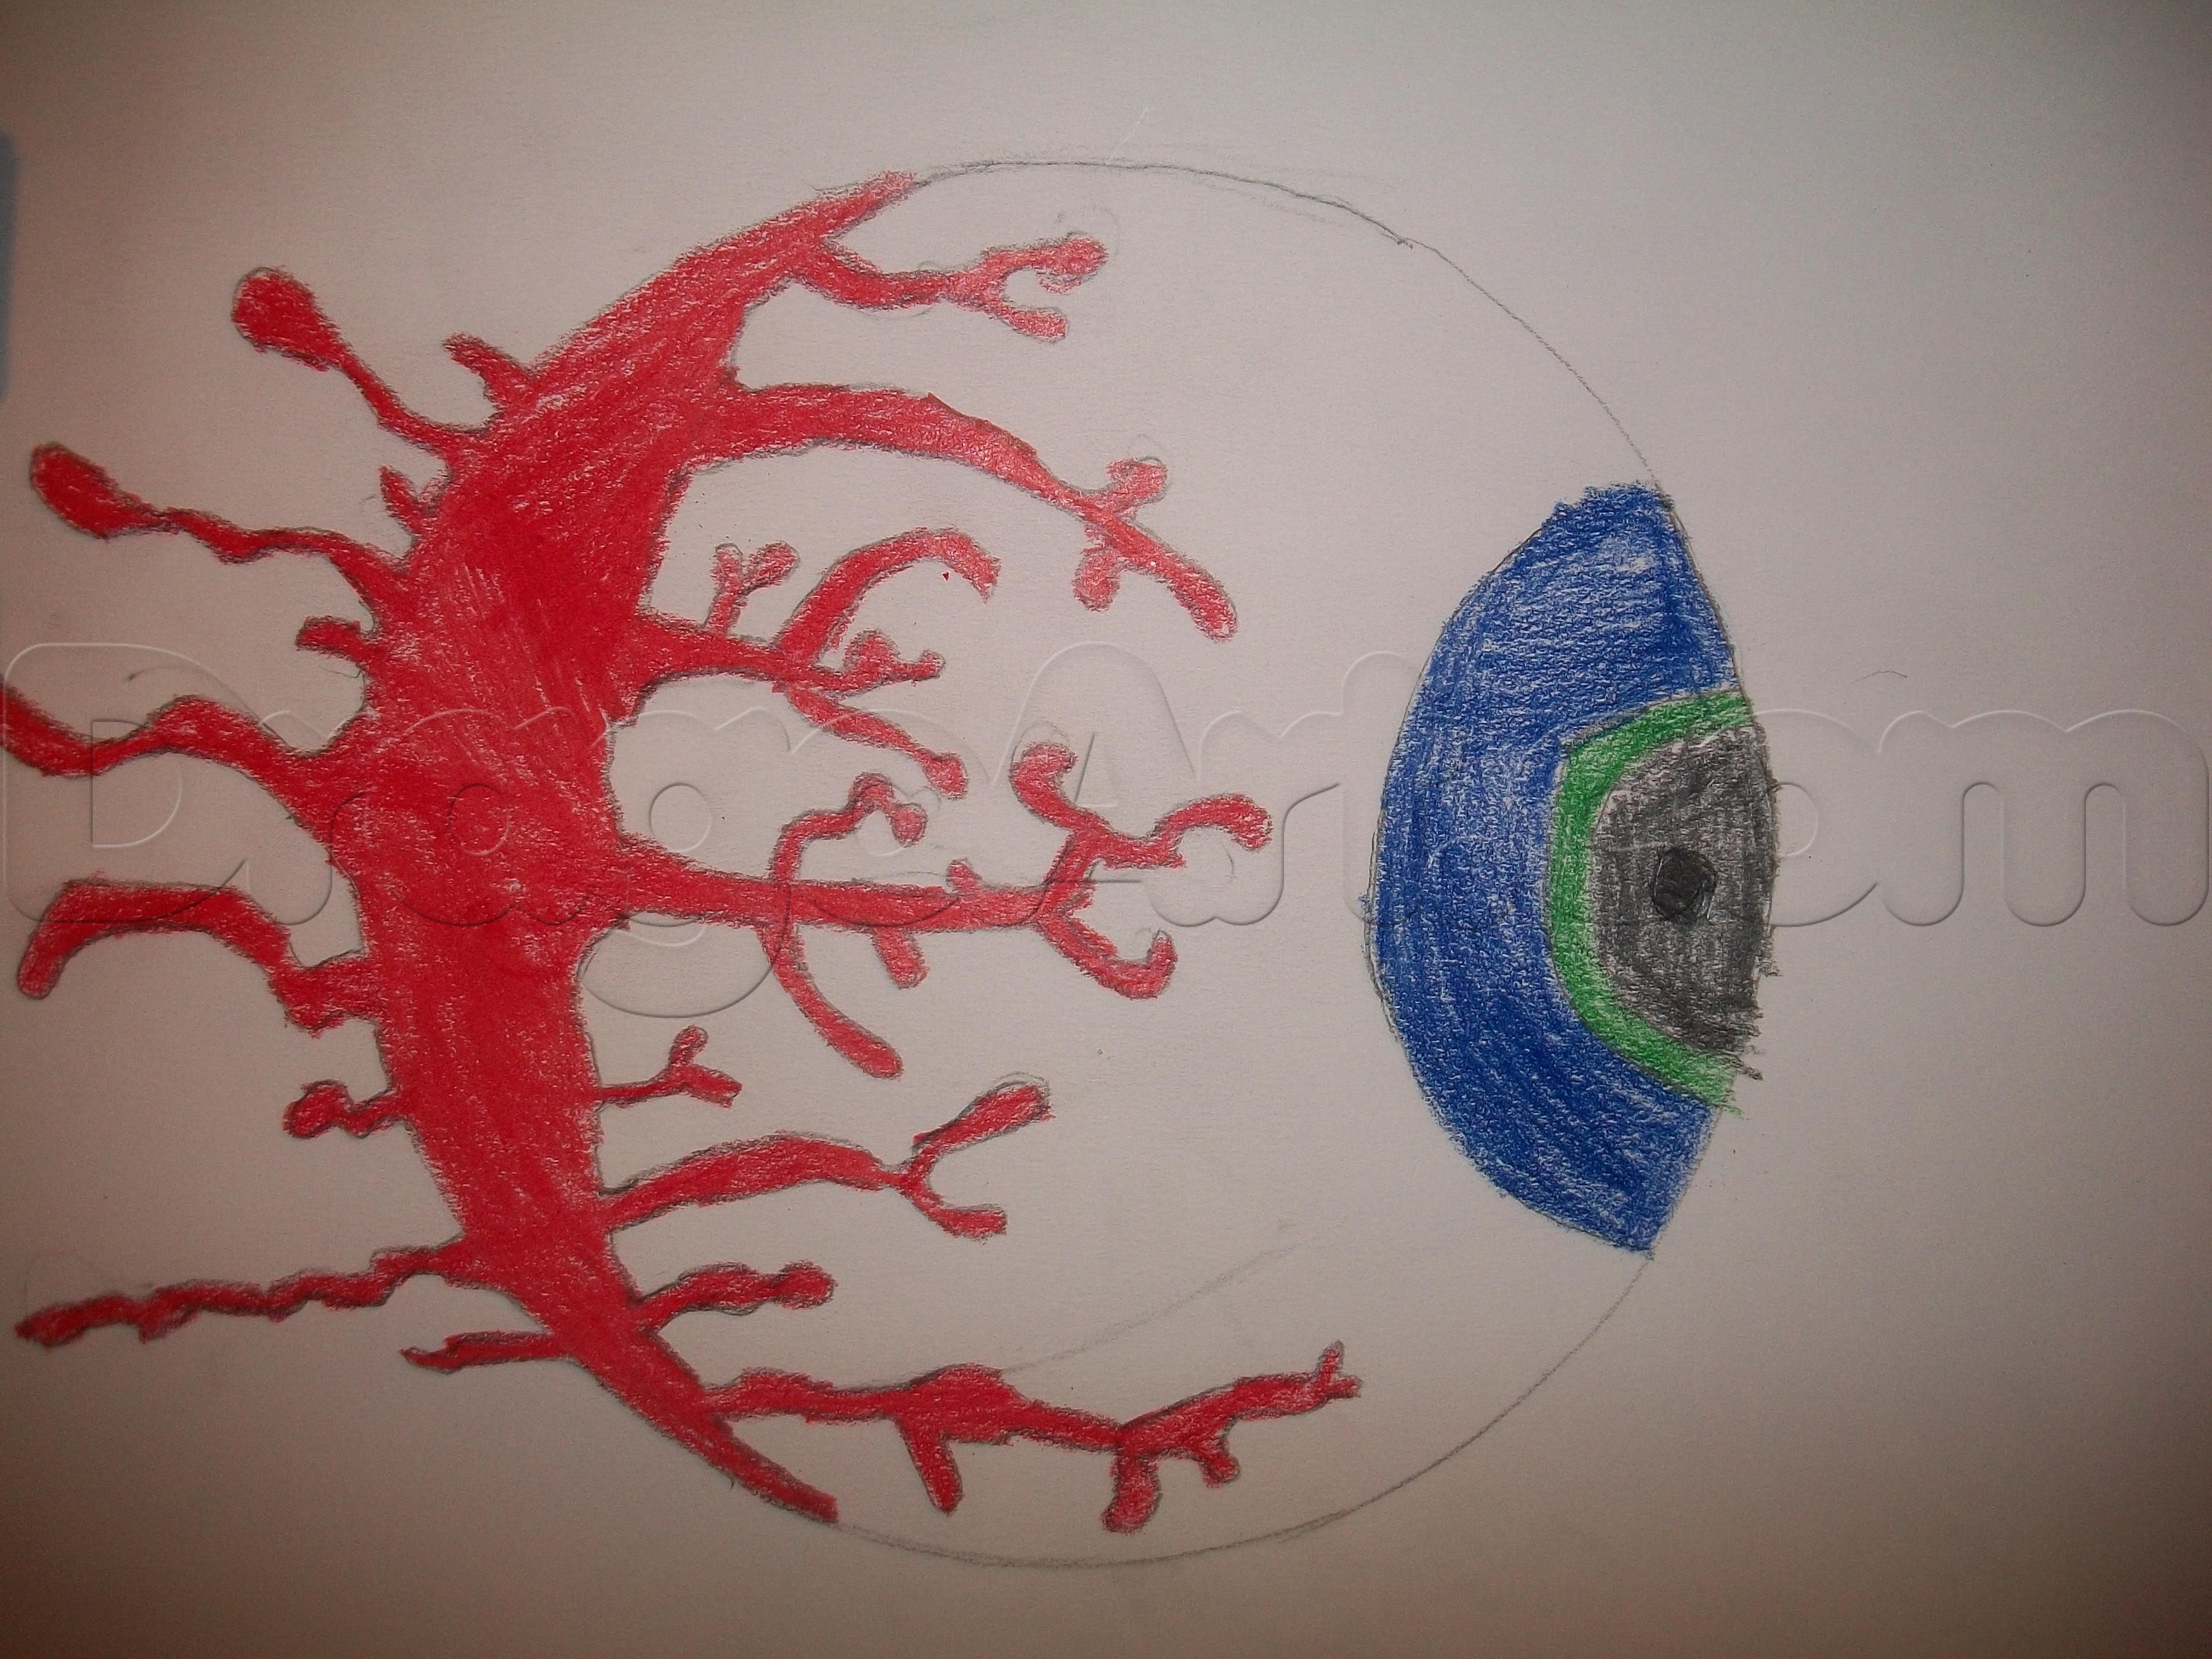 Drawn eyeball real life Draw terraria by how How